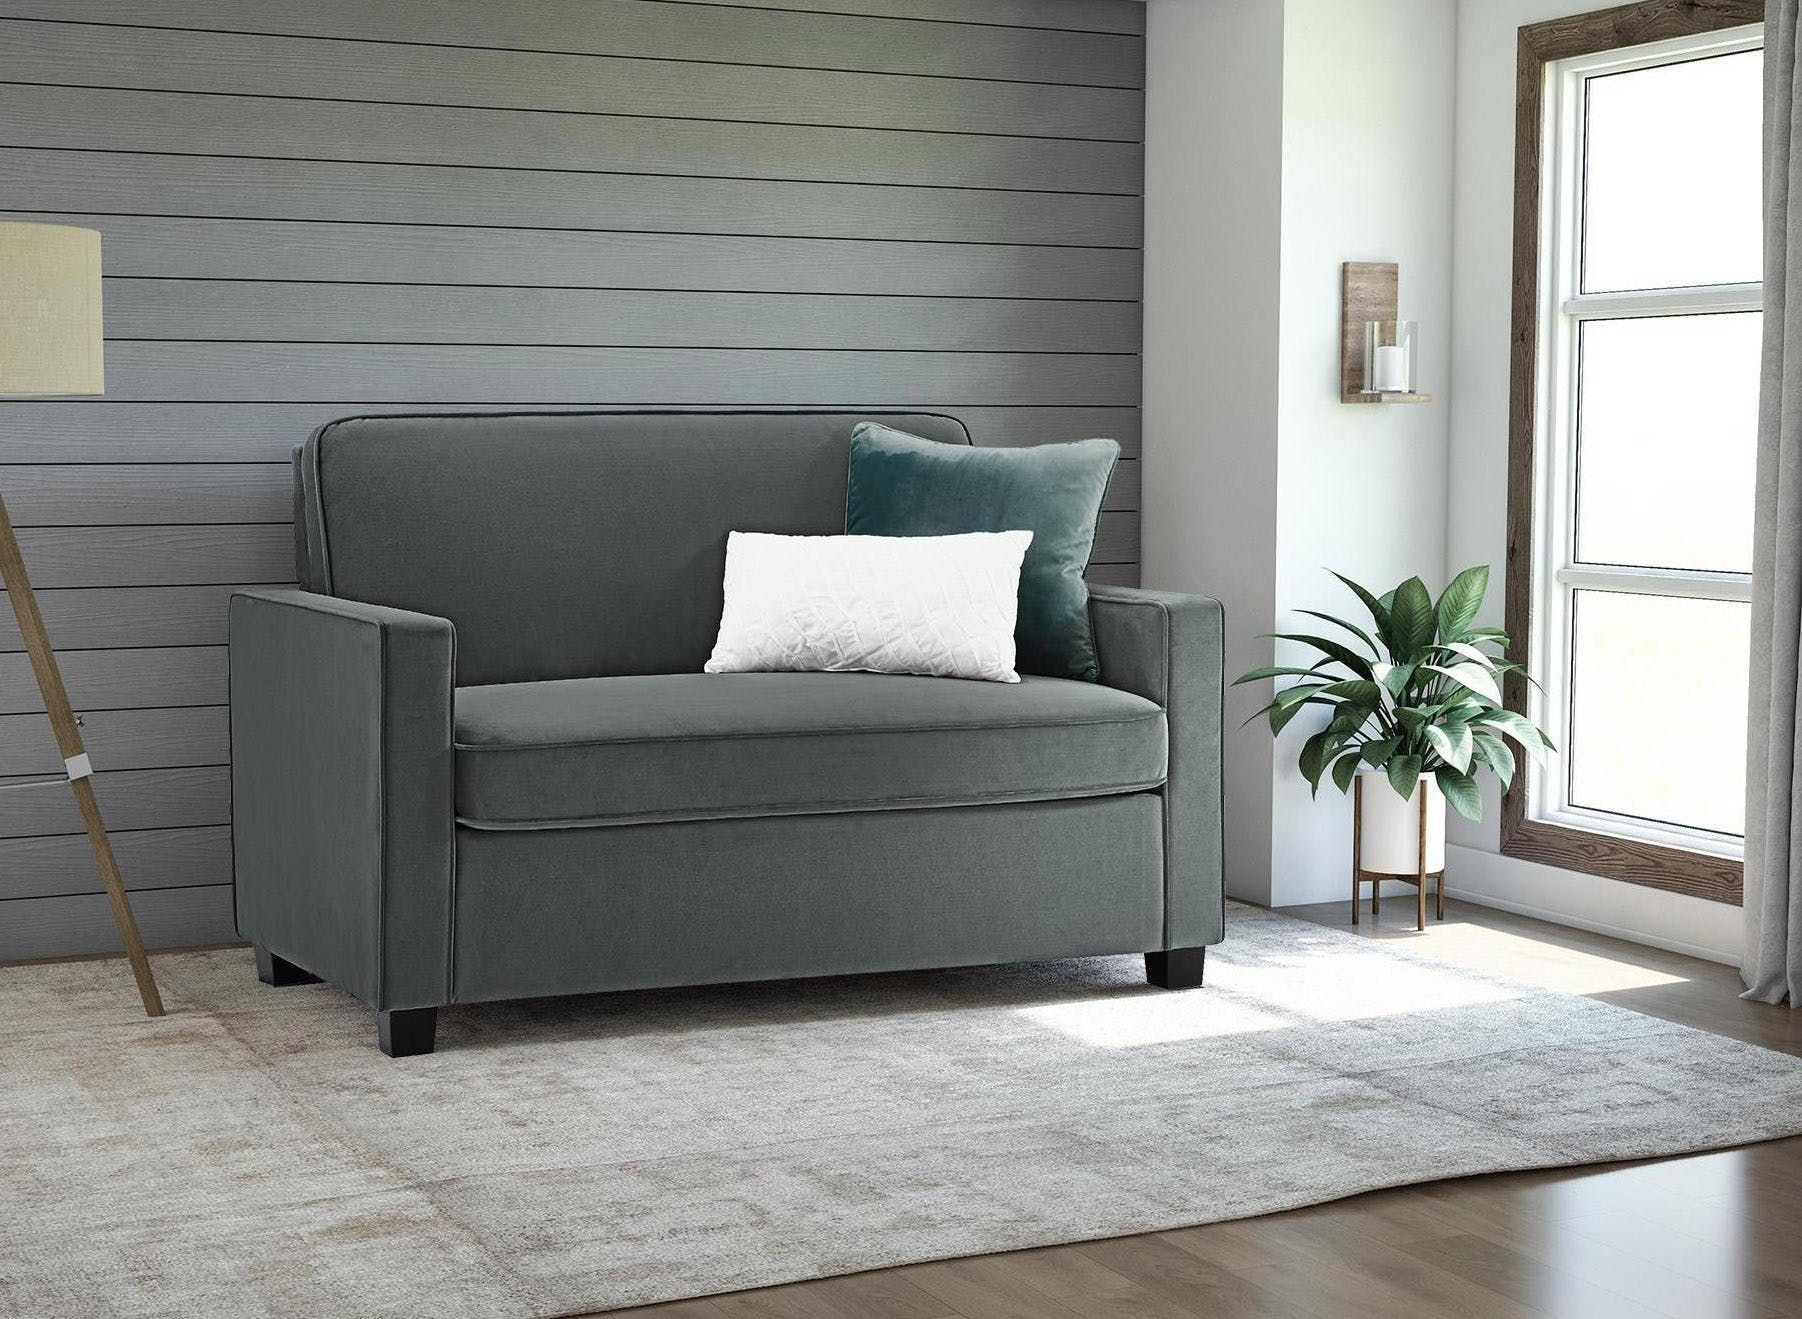 Loveseats For Small Spaces The Best Sleeper Sofas For Small Spaces Basement Ideas